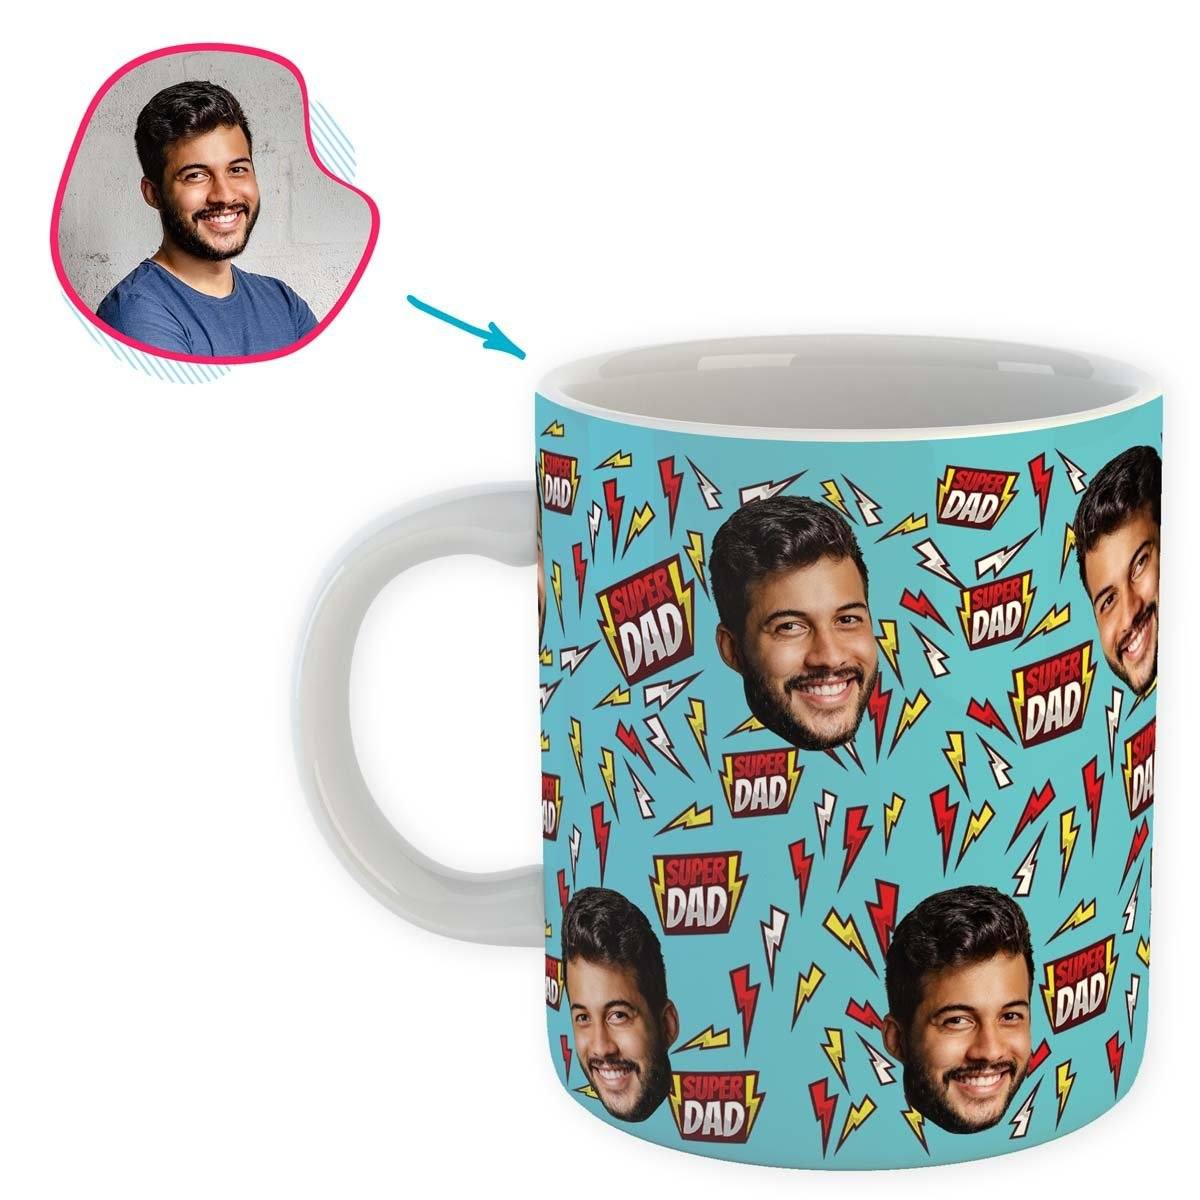 blue Super Dad mug personalized with photo of face printed on it